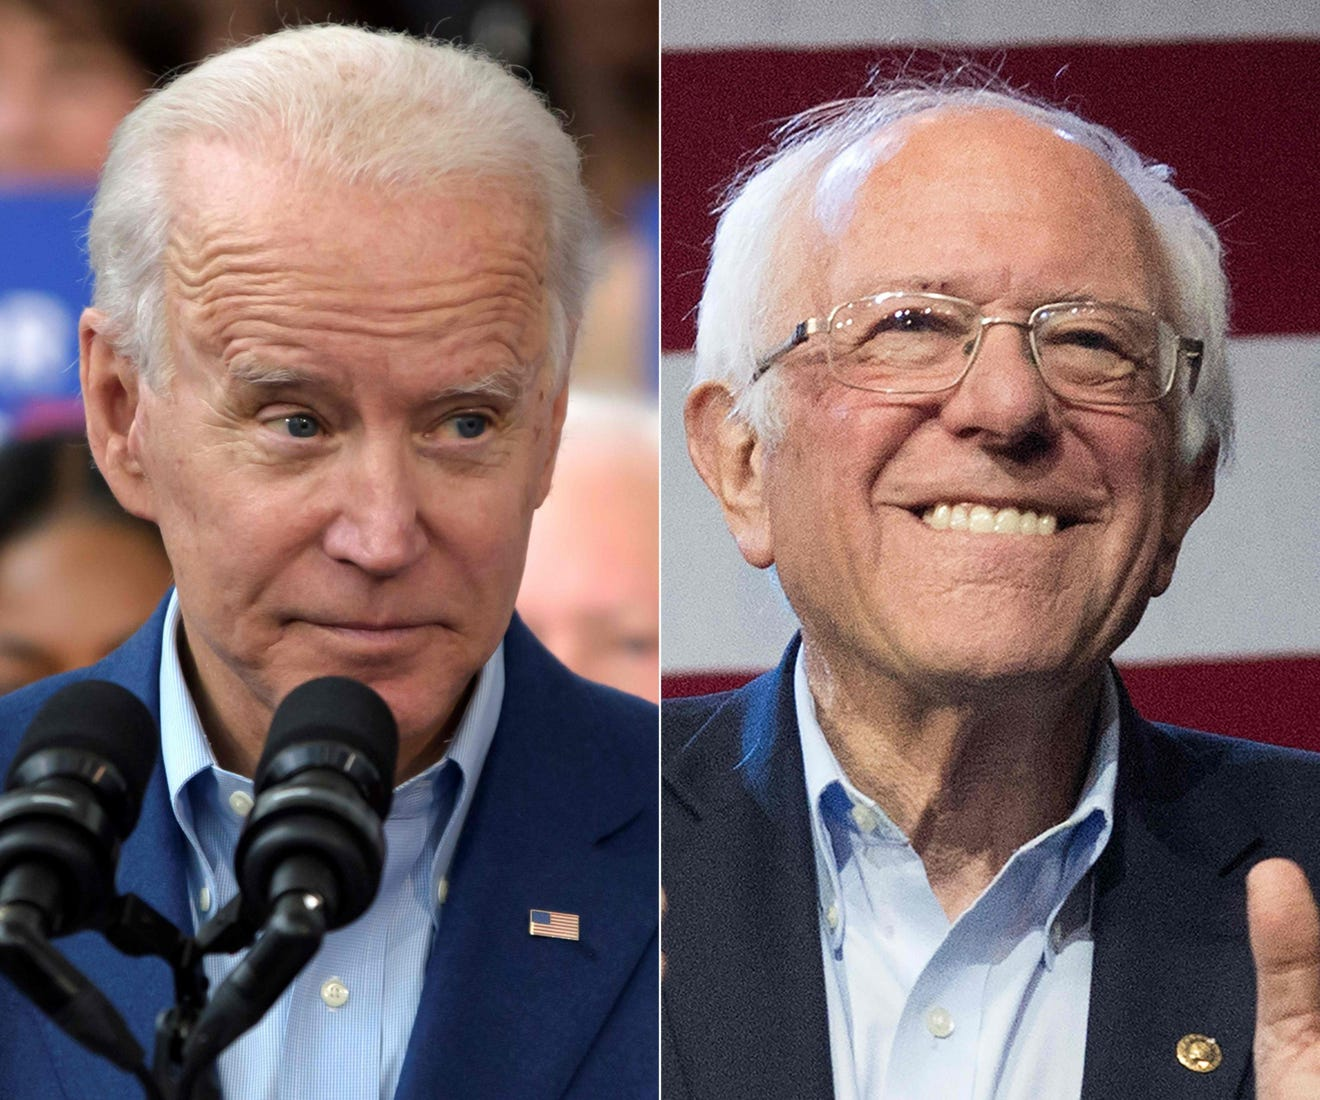 USA TODAY – Bernie Sanders supporters reluctantly turn to Joe Biden, fueled by their dislike of President Trump